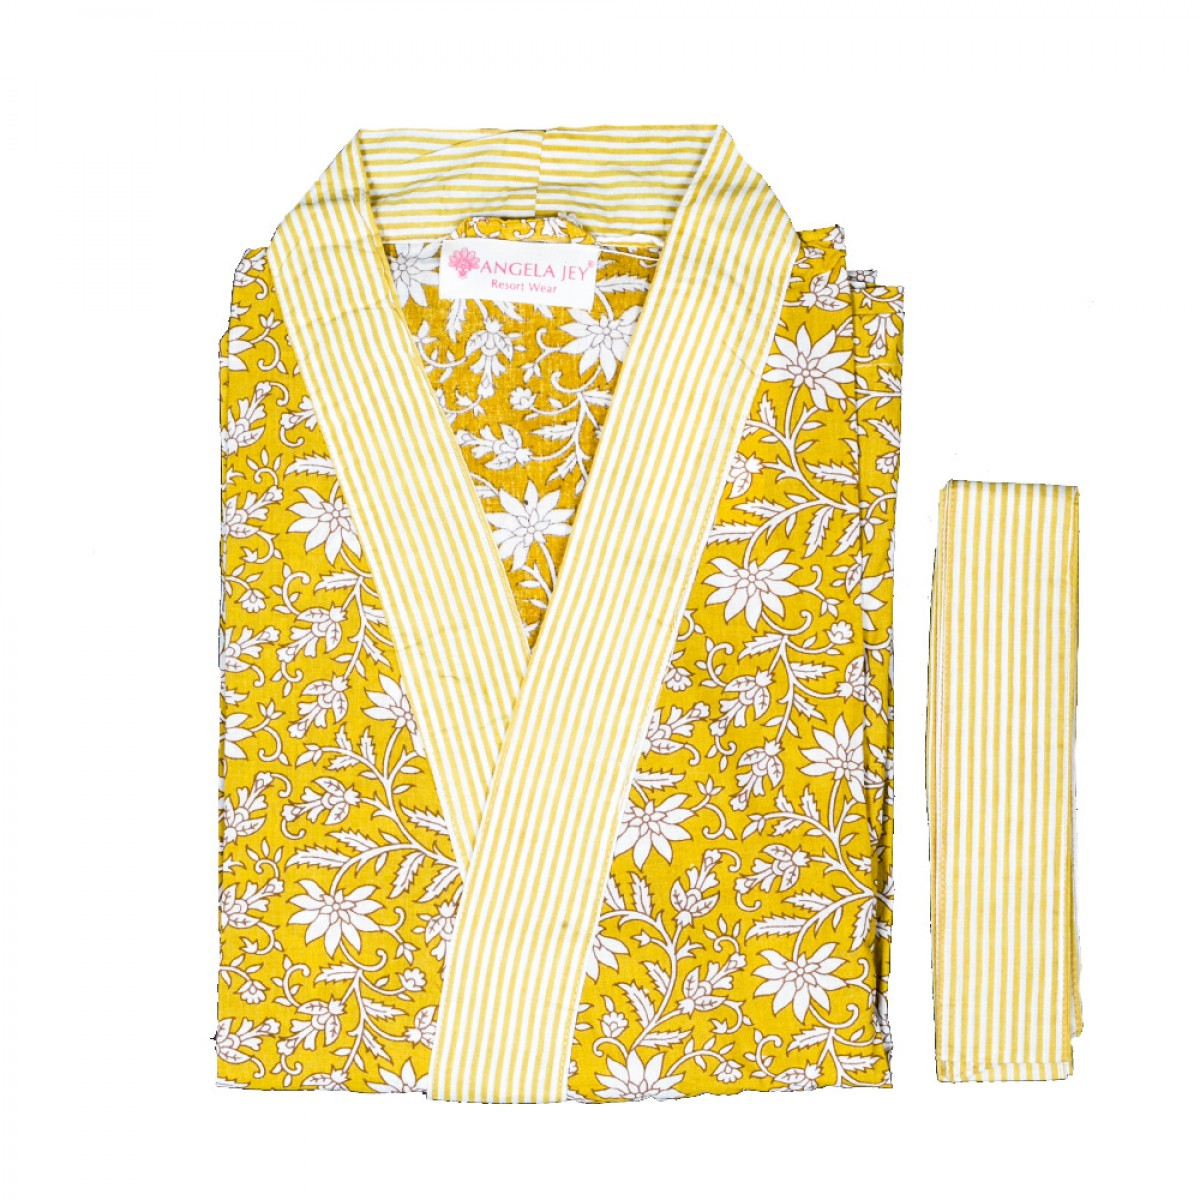 Hand Block Print Robe - Tuscany Yellow